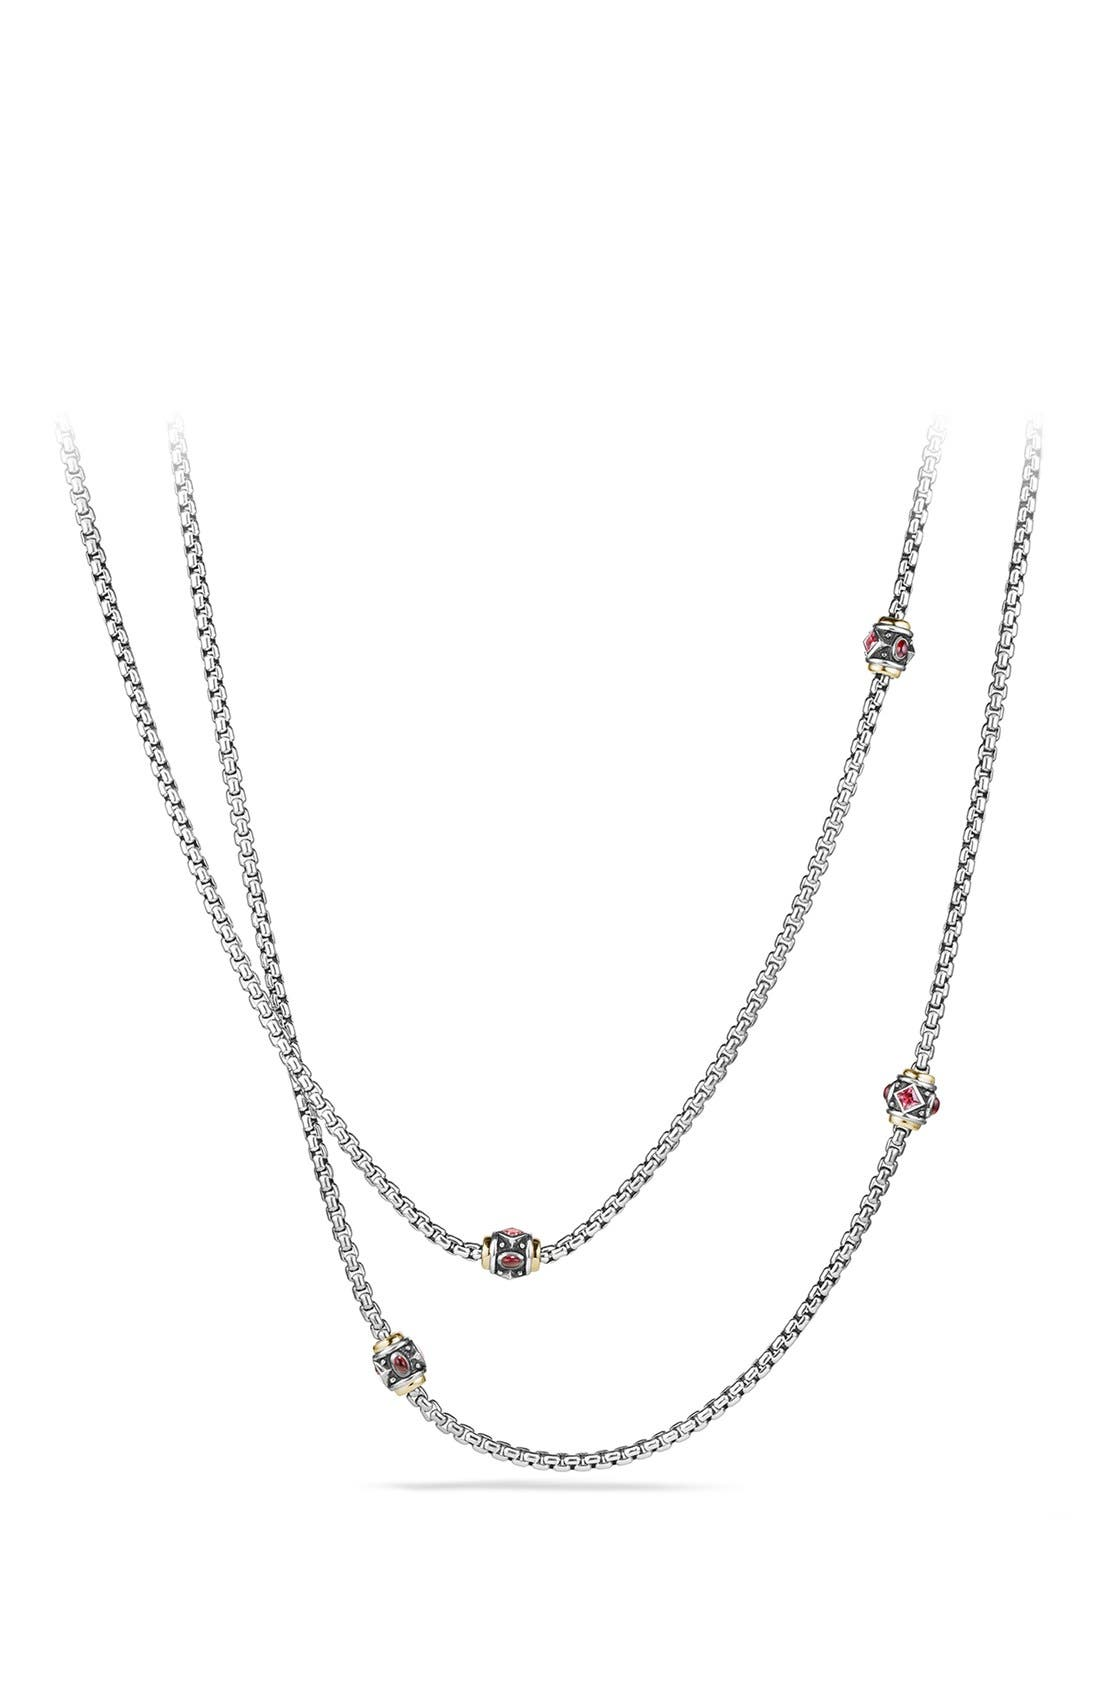 David Yurman 'Renaissance' Necklace with Semiprecious Stone and 18k Gold